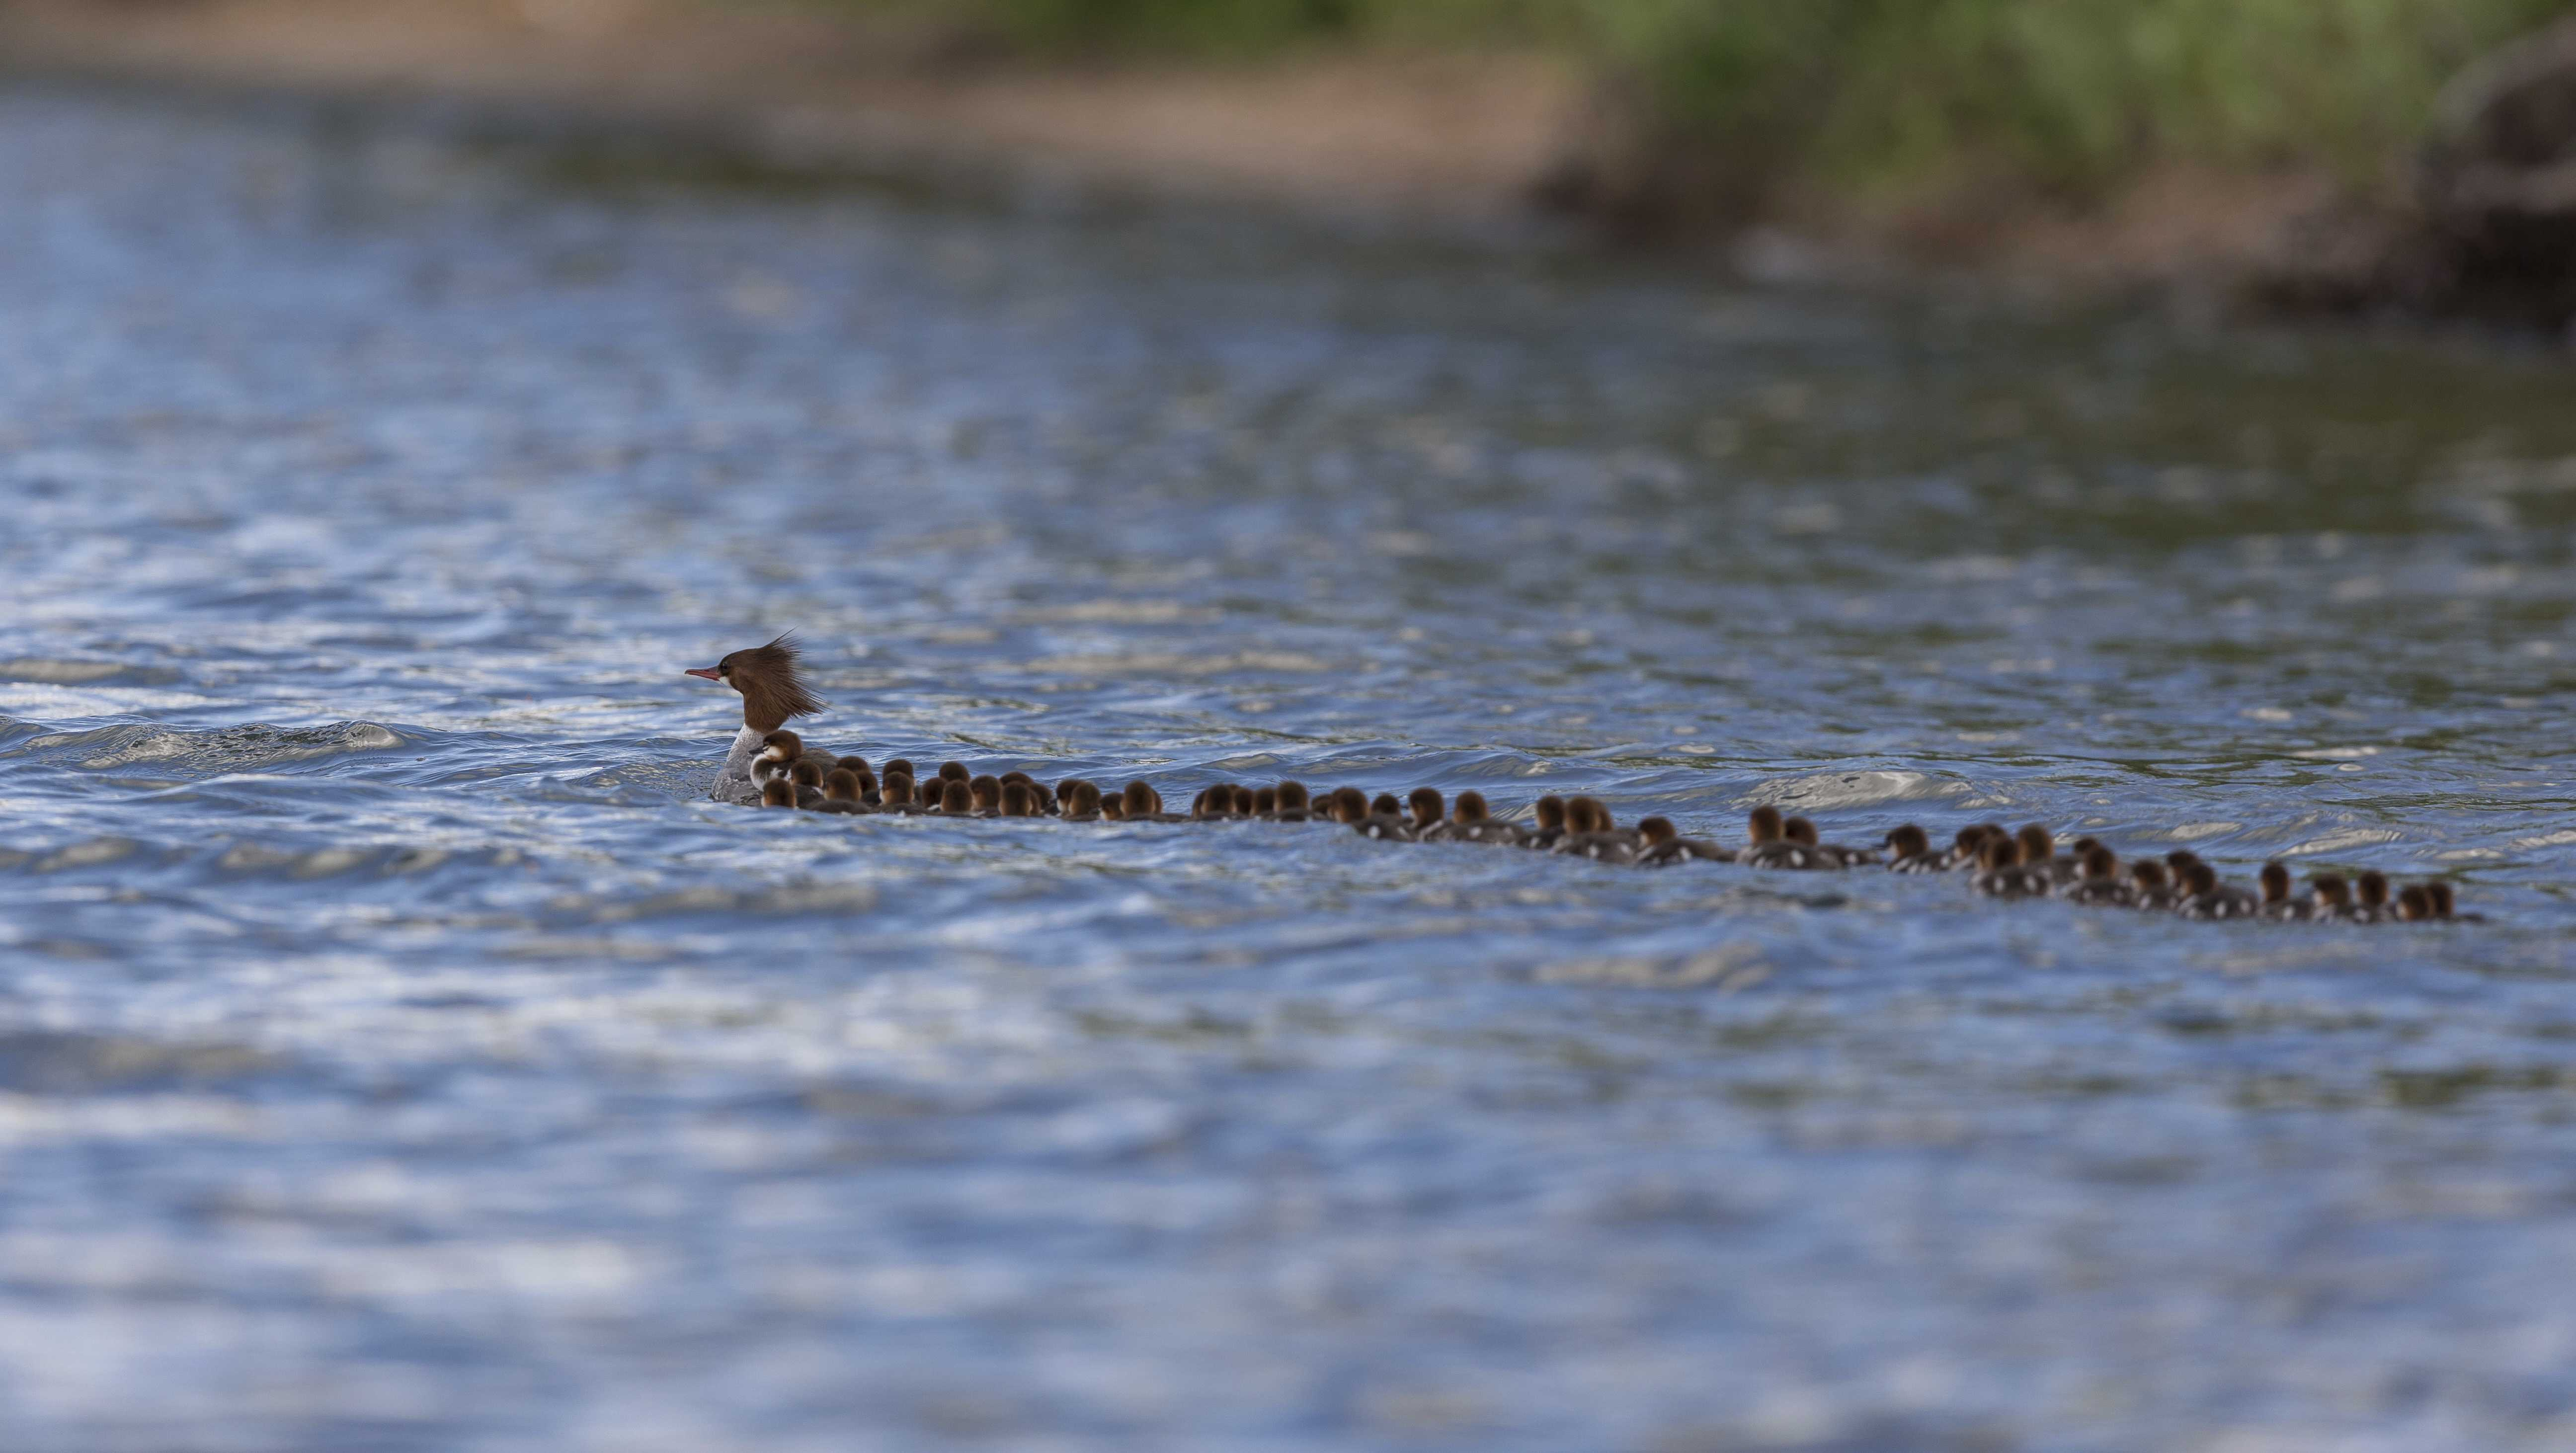 This June 27, 2018, photo provided by Brent Cizek shows a common merganser and a large group of ducklings following her, on Lake Bemidji in Bemidji, Minn.